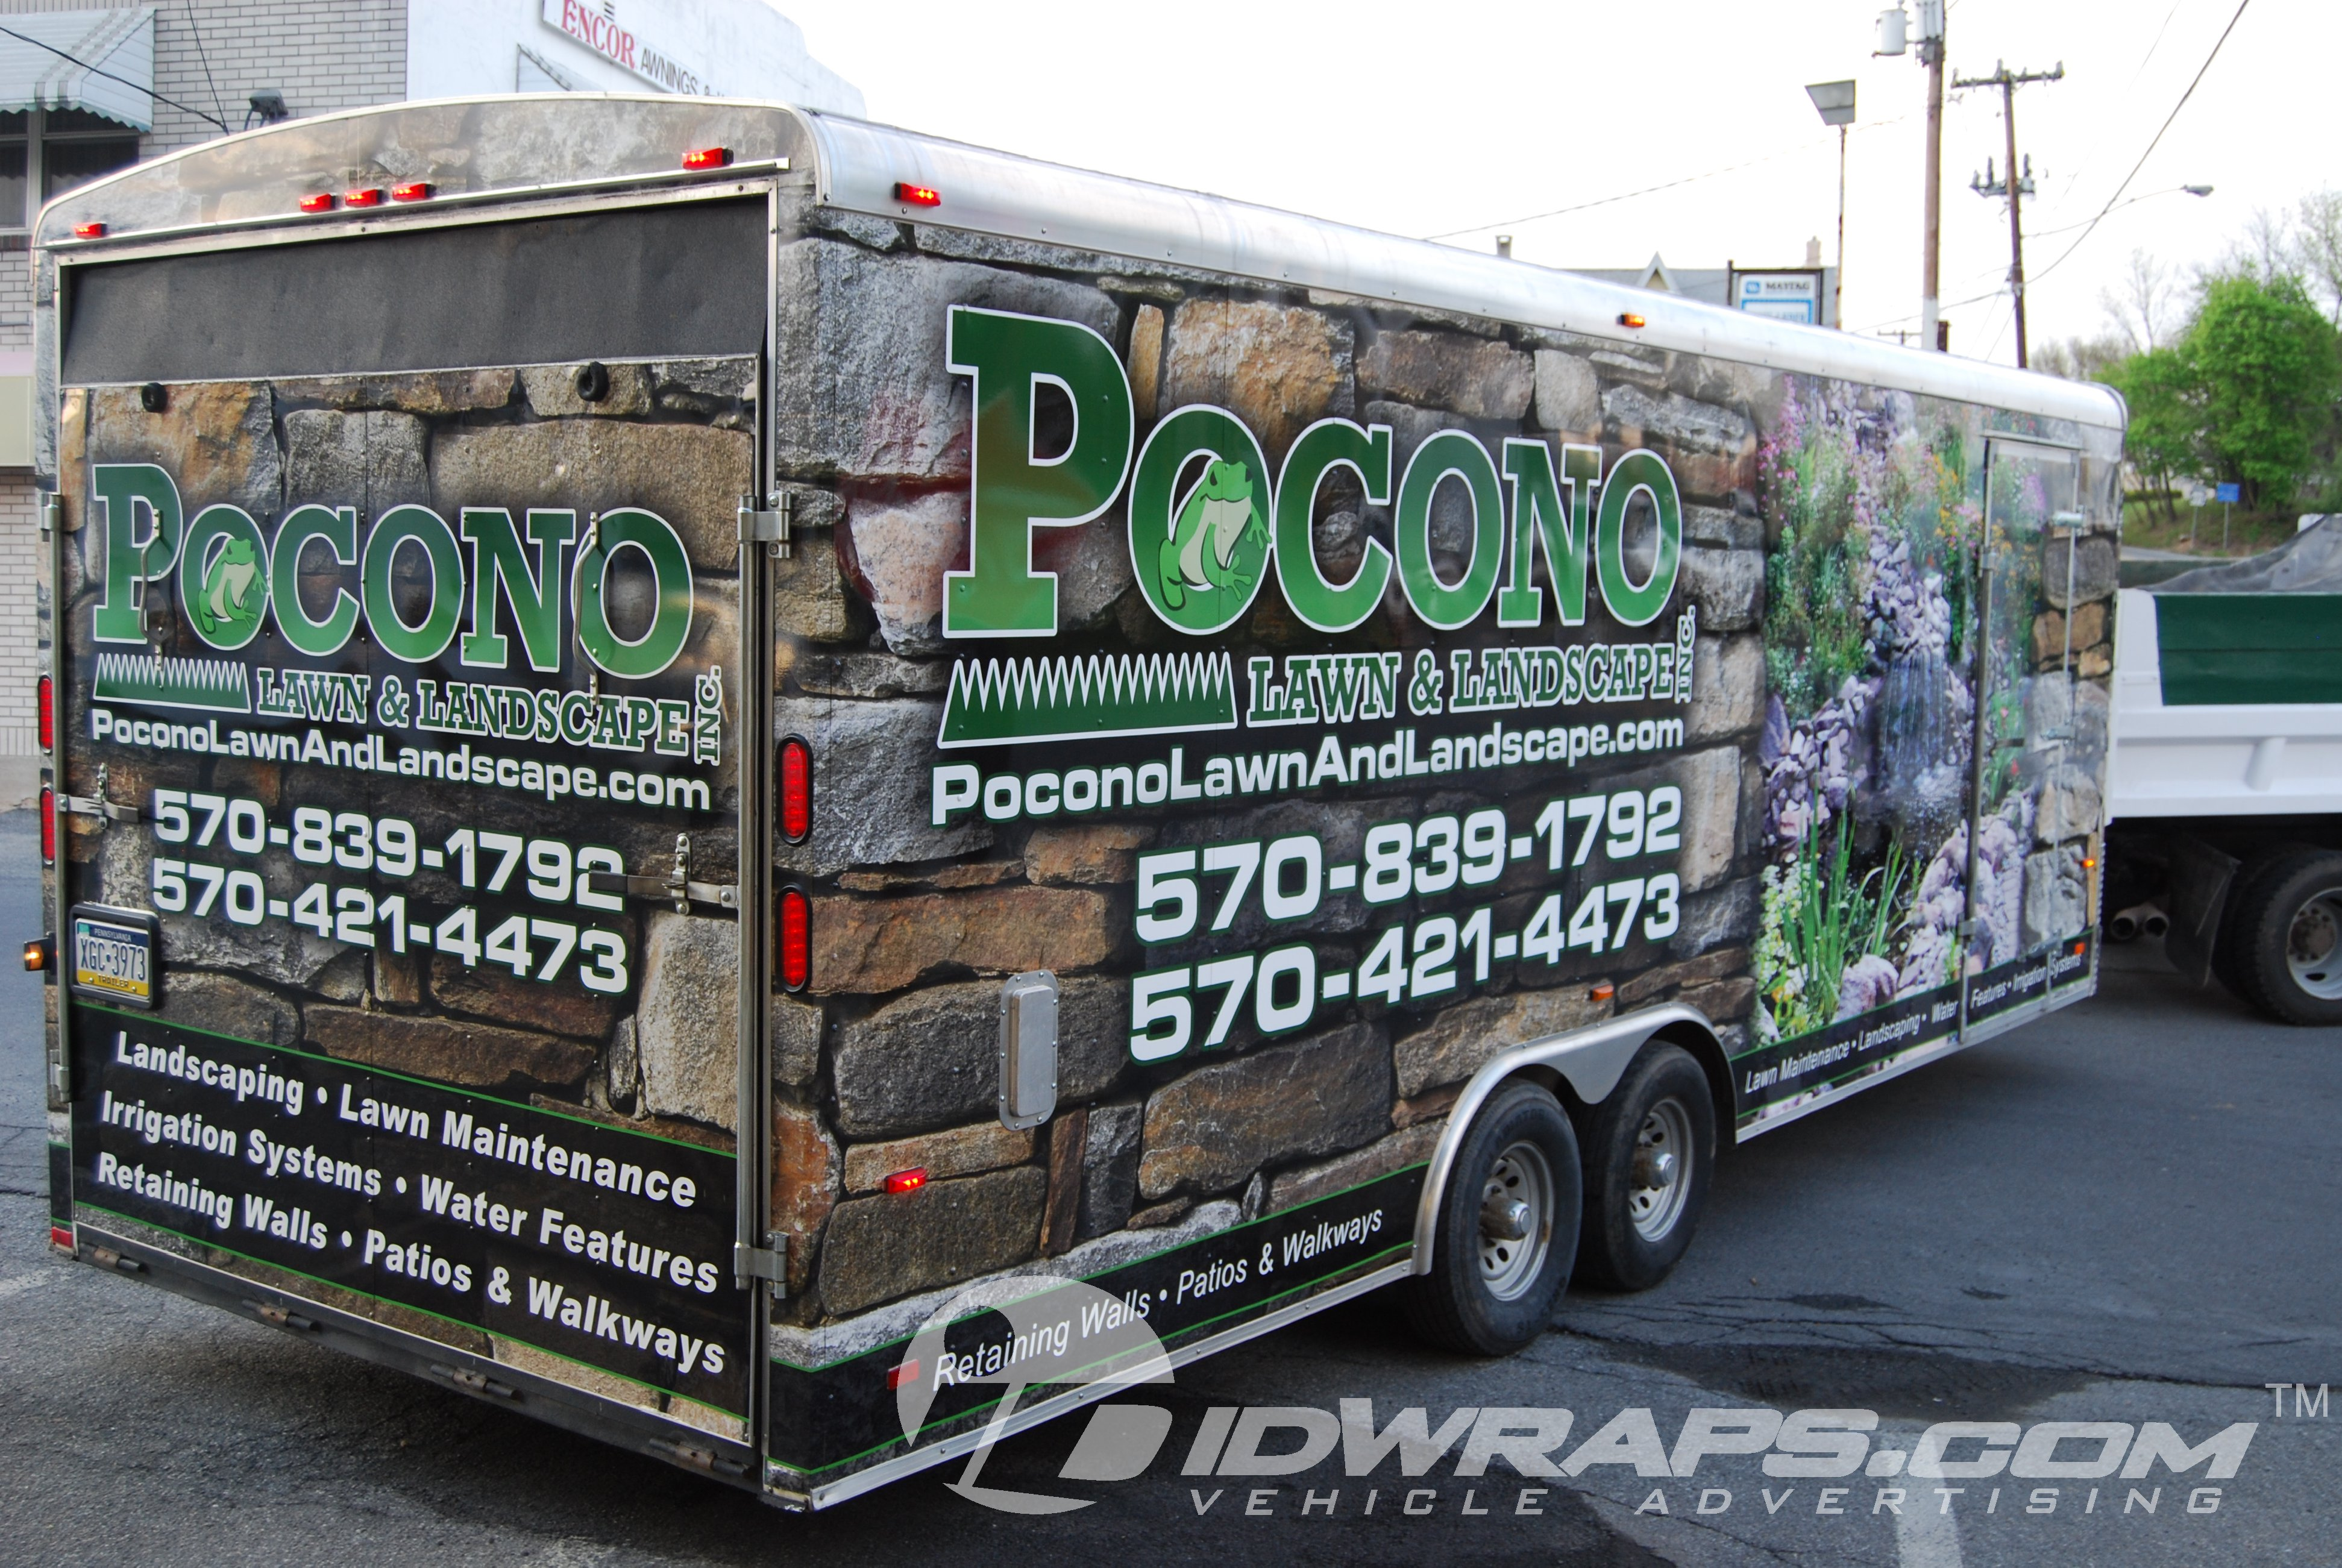 ideas to clean garage - Pocono Lawn and Landscape Lanscaping Enclosed Cargo